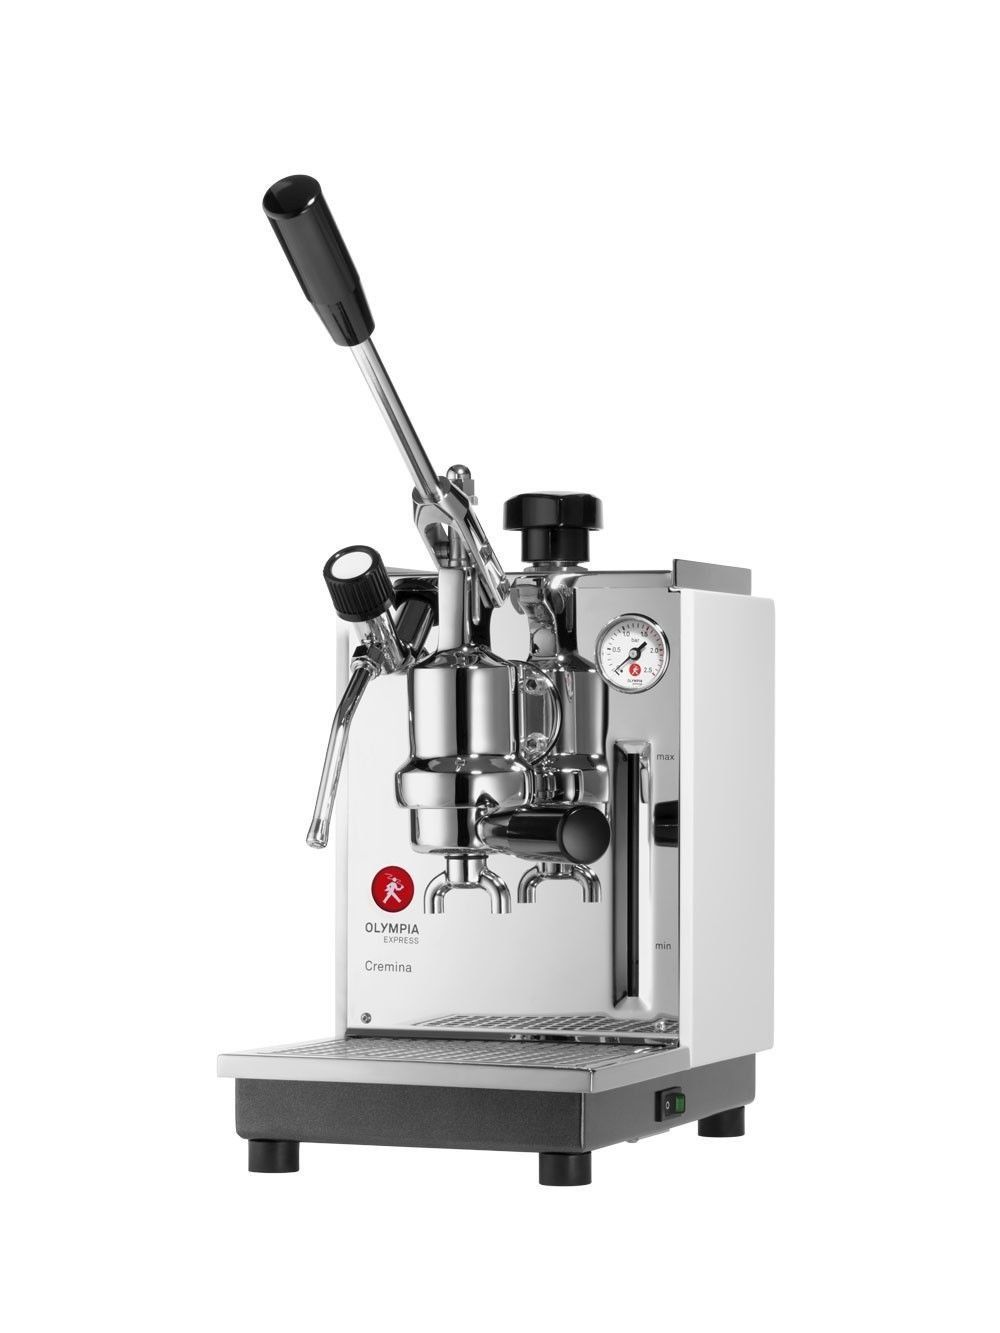 Olympia Express Cremina Lever Espresso Machine White This Is An Amazon Affiliate Link Want To Know More Espresso Machine Espresso Espresso Machine Reviews